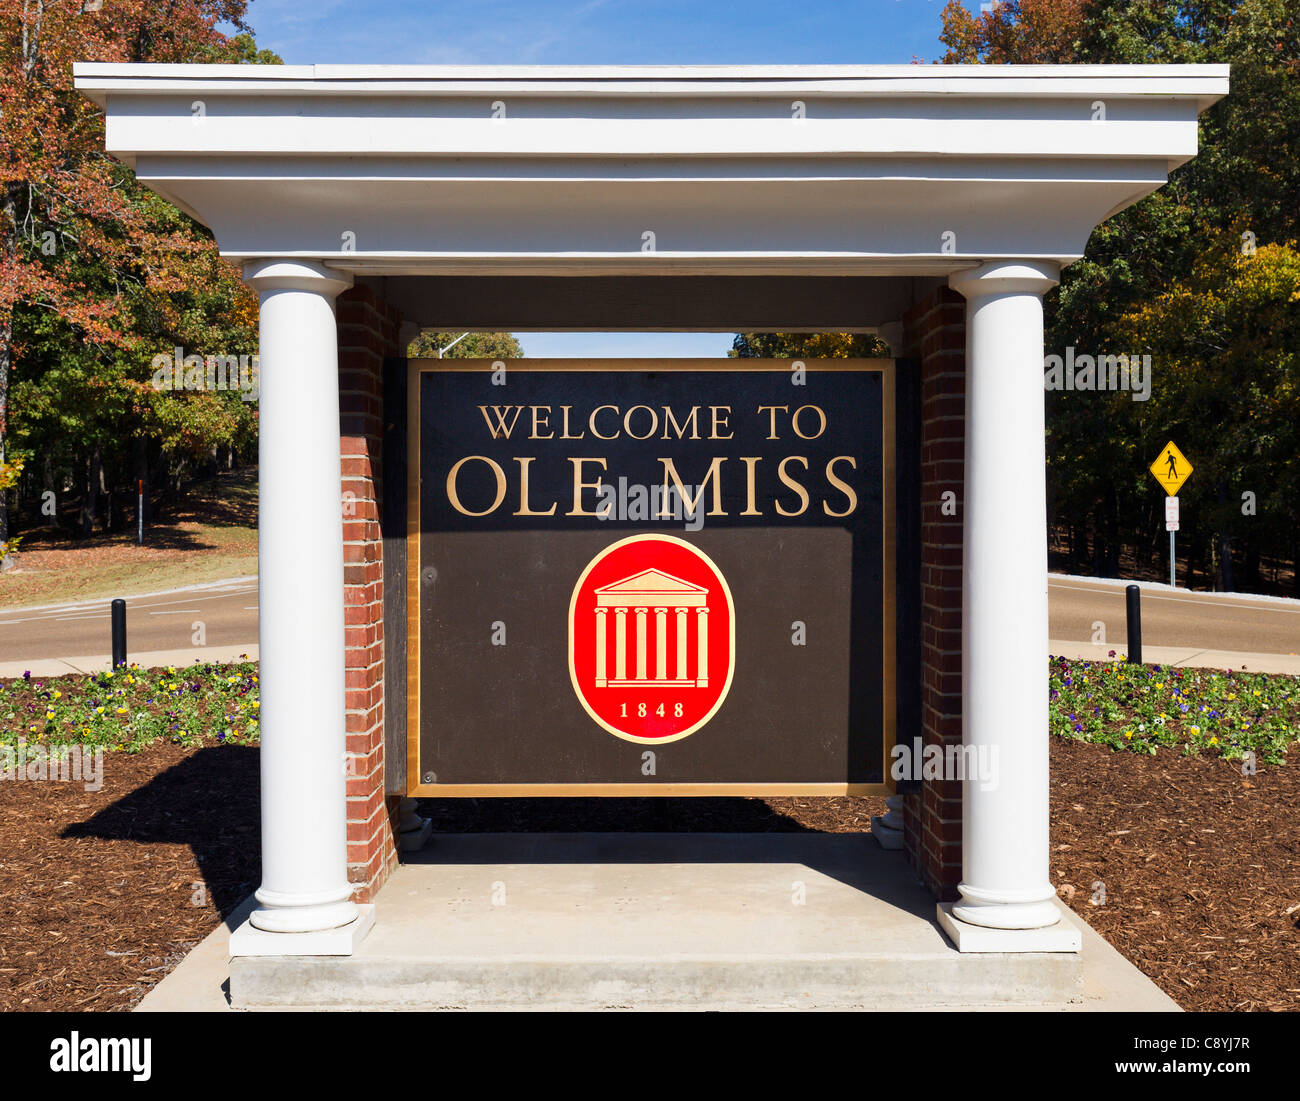 Entrance to the University of Mississippi (Ole Miss), Oxford, Mississippi, USA Stock Photo